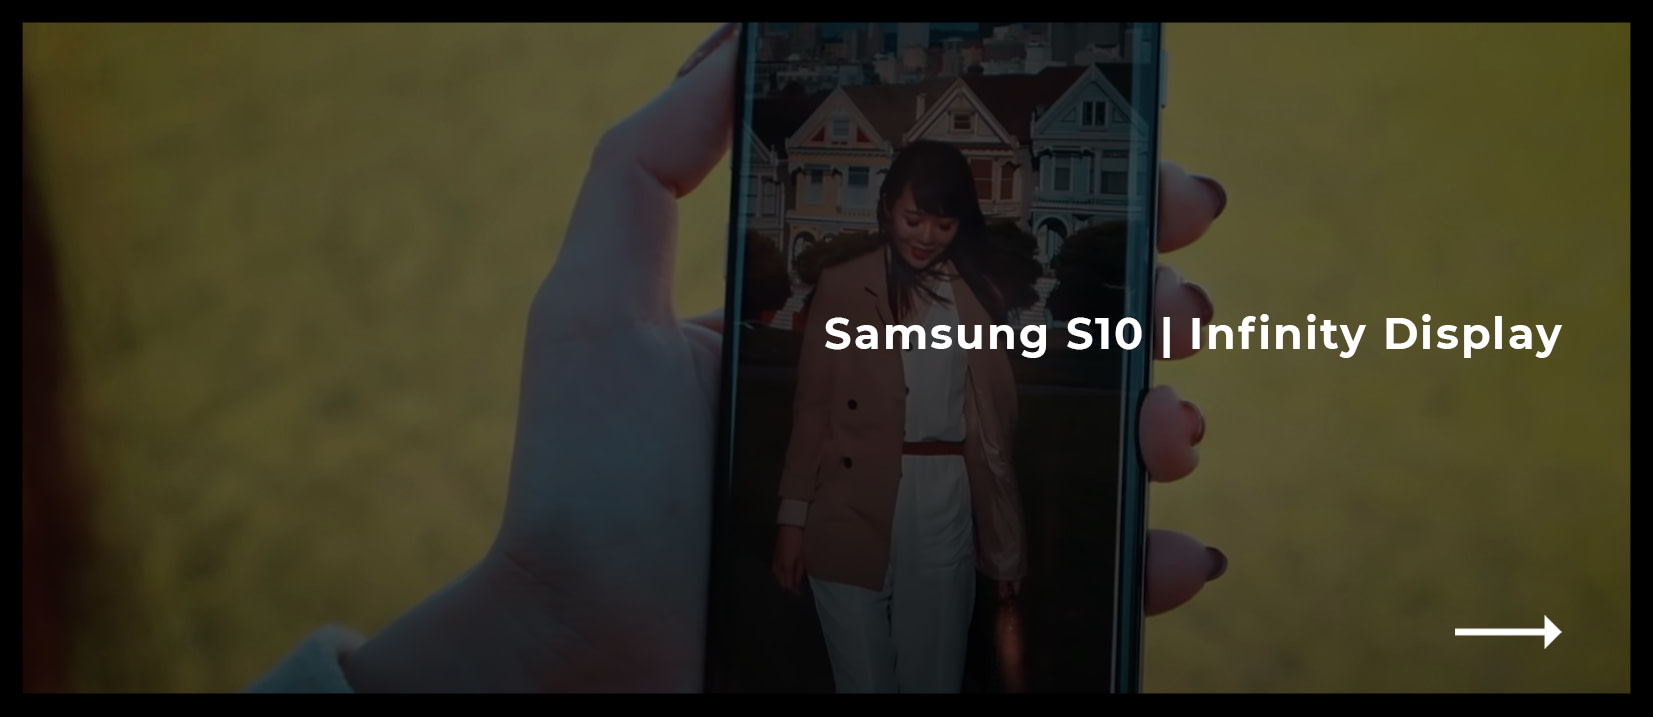 Samsung S10 - Infinity Display